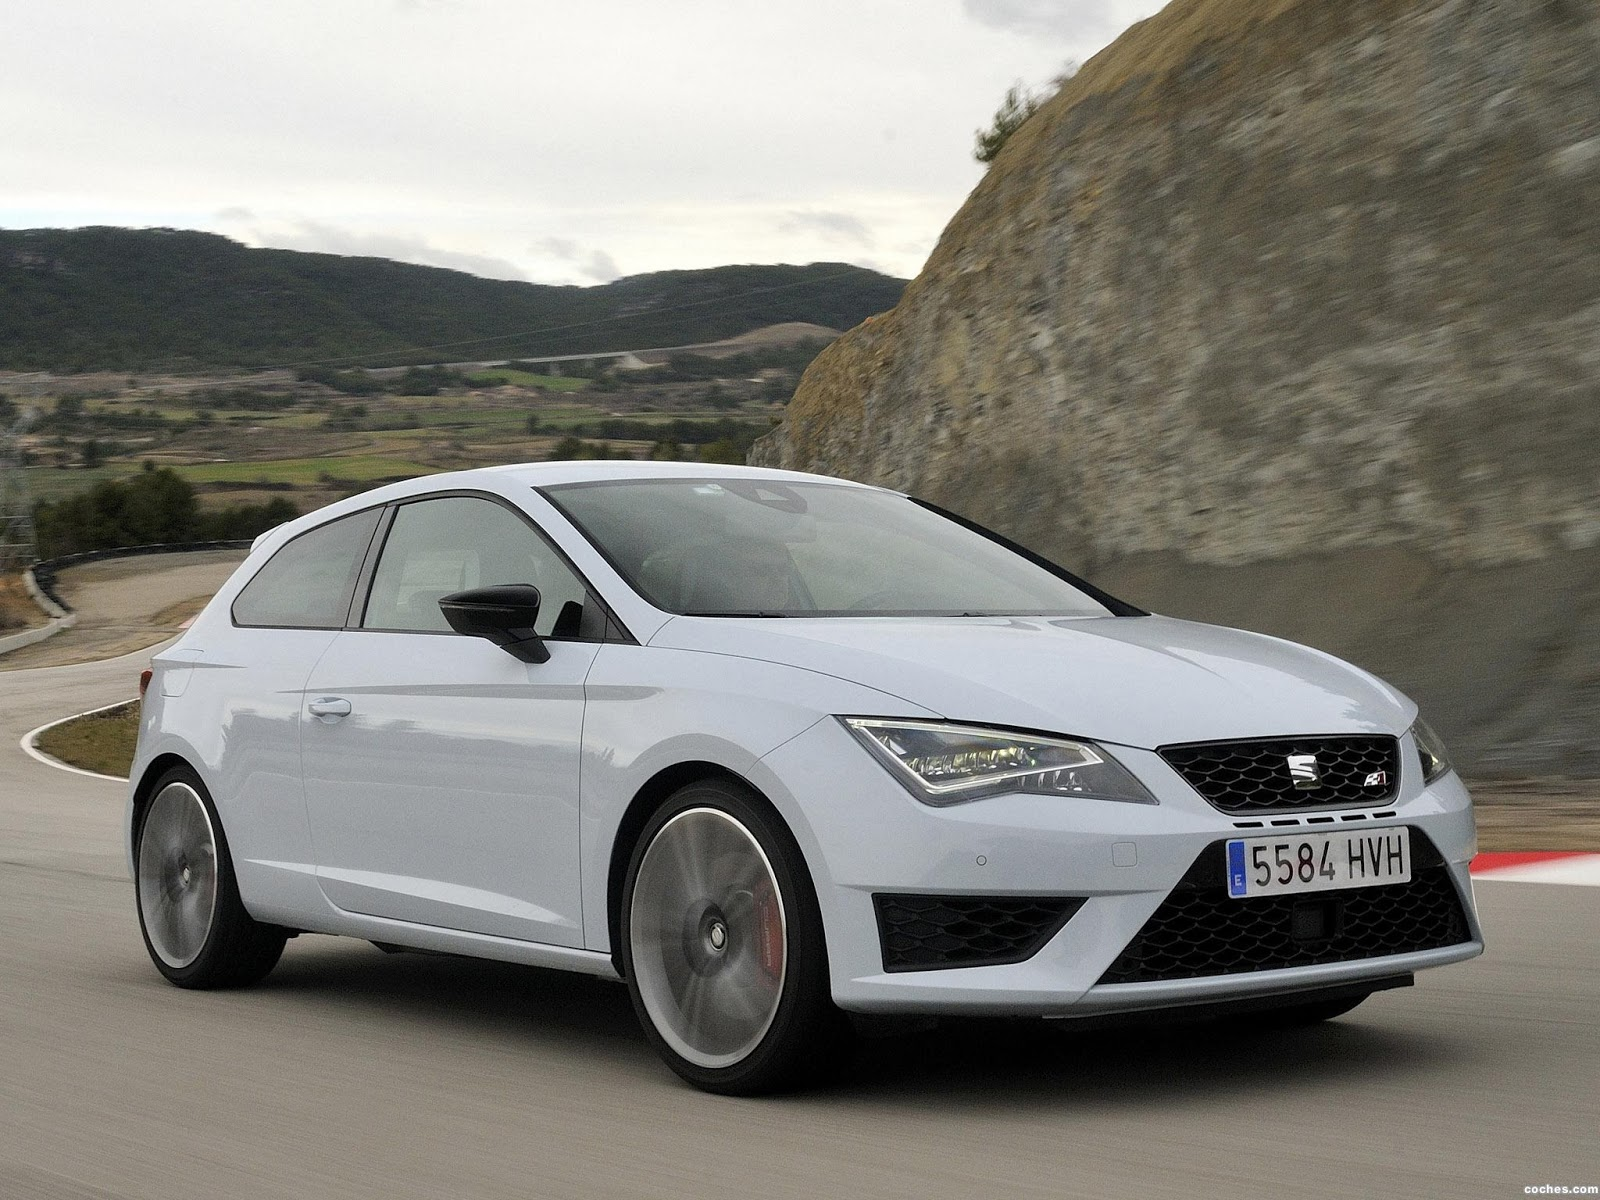 seat leon cupra salvaje mente divertido. Black Bedroom Furniture Sets. Home Design Ideas